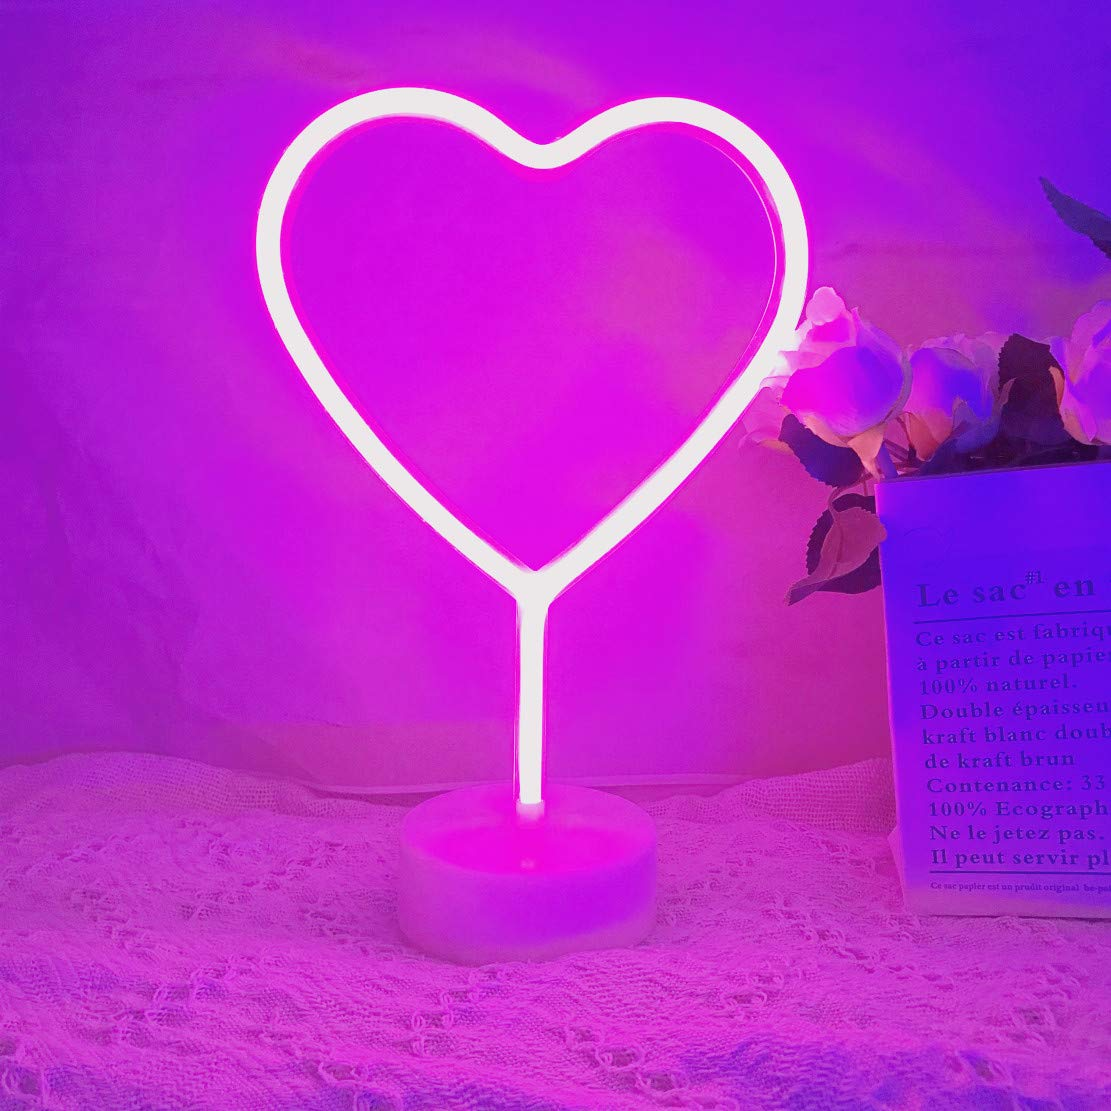 QiaoFei LED Heart Sign Night Light,Neon Heart Shaped Decor Light with Holder Base,Table Light Marquee Signs/Wall Decor for Christmas,Birthday Party,Kids Room,Living Room,Wedding Party Decor(Pink)